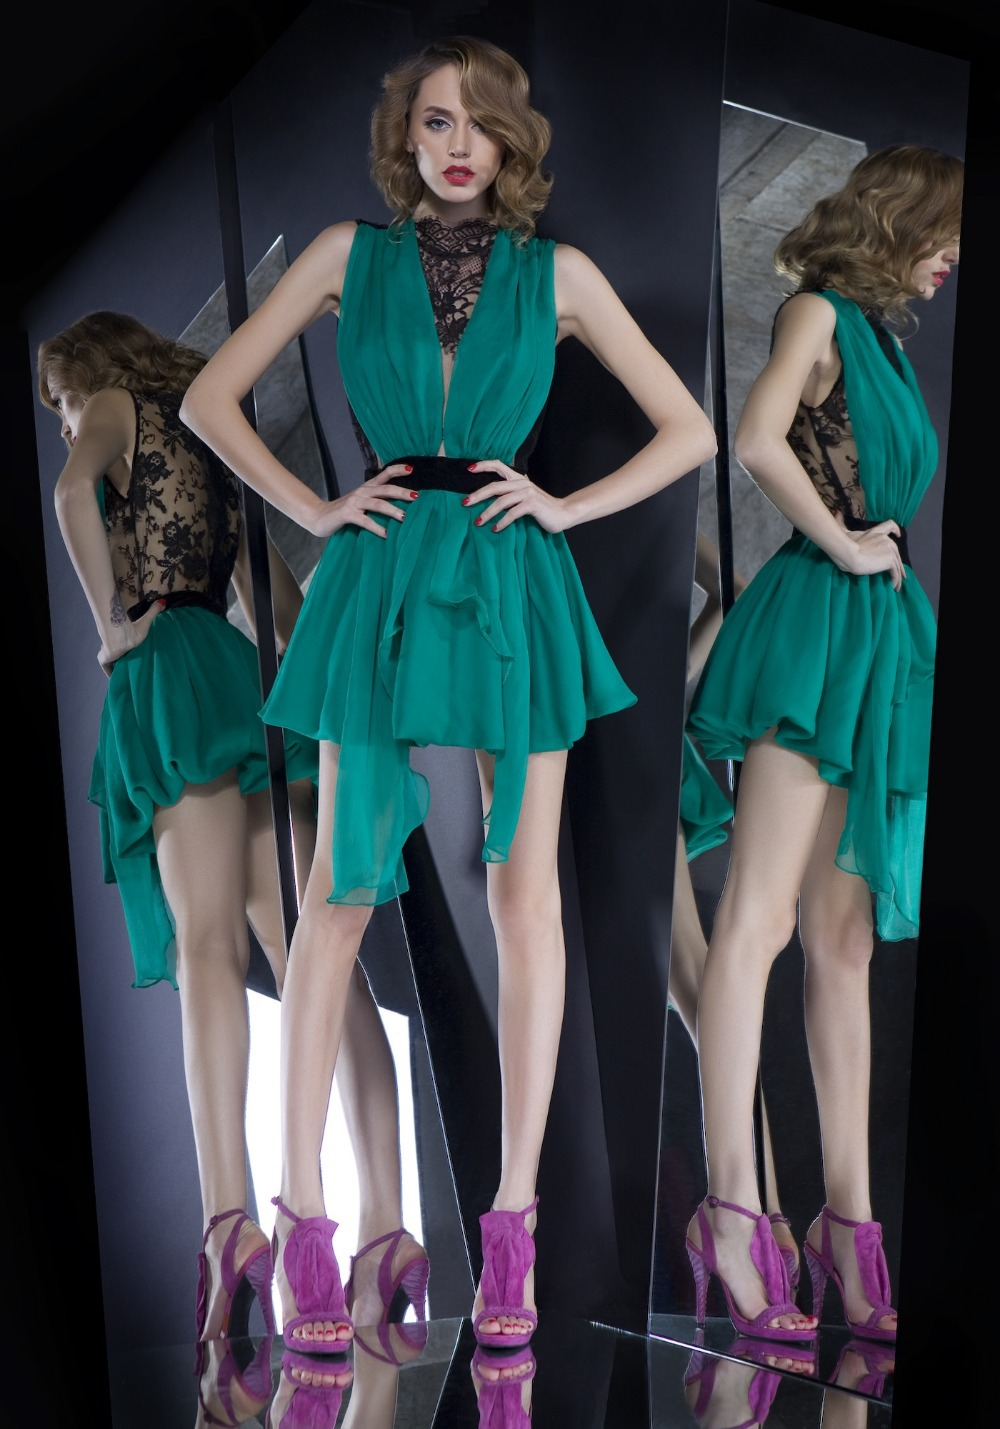 Pretty New Years Party Dresses 2014 Gallery - Wedding Ideas ...